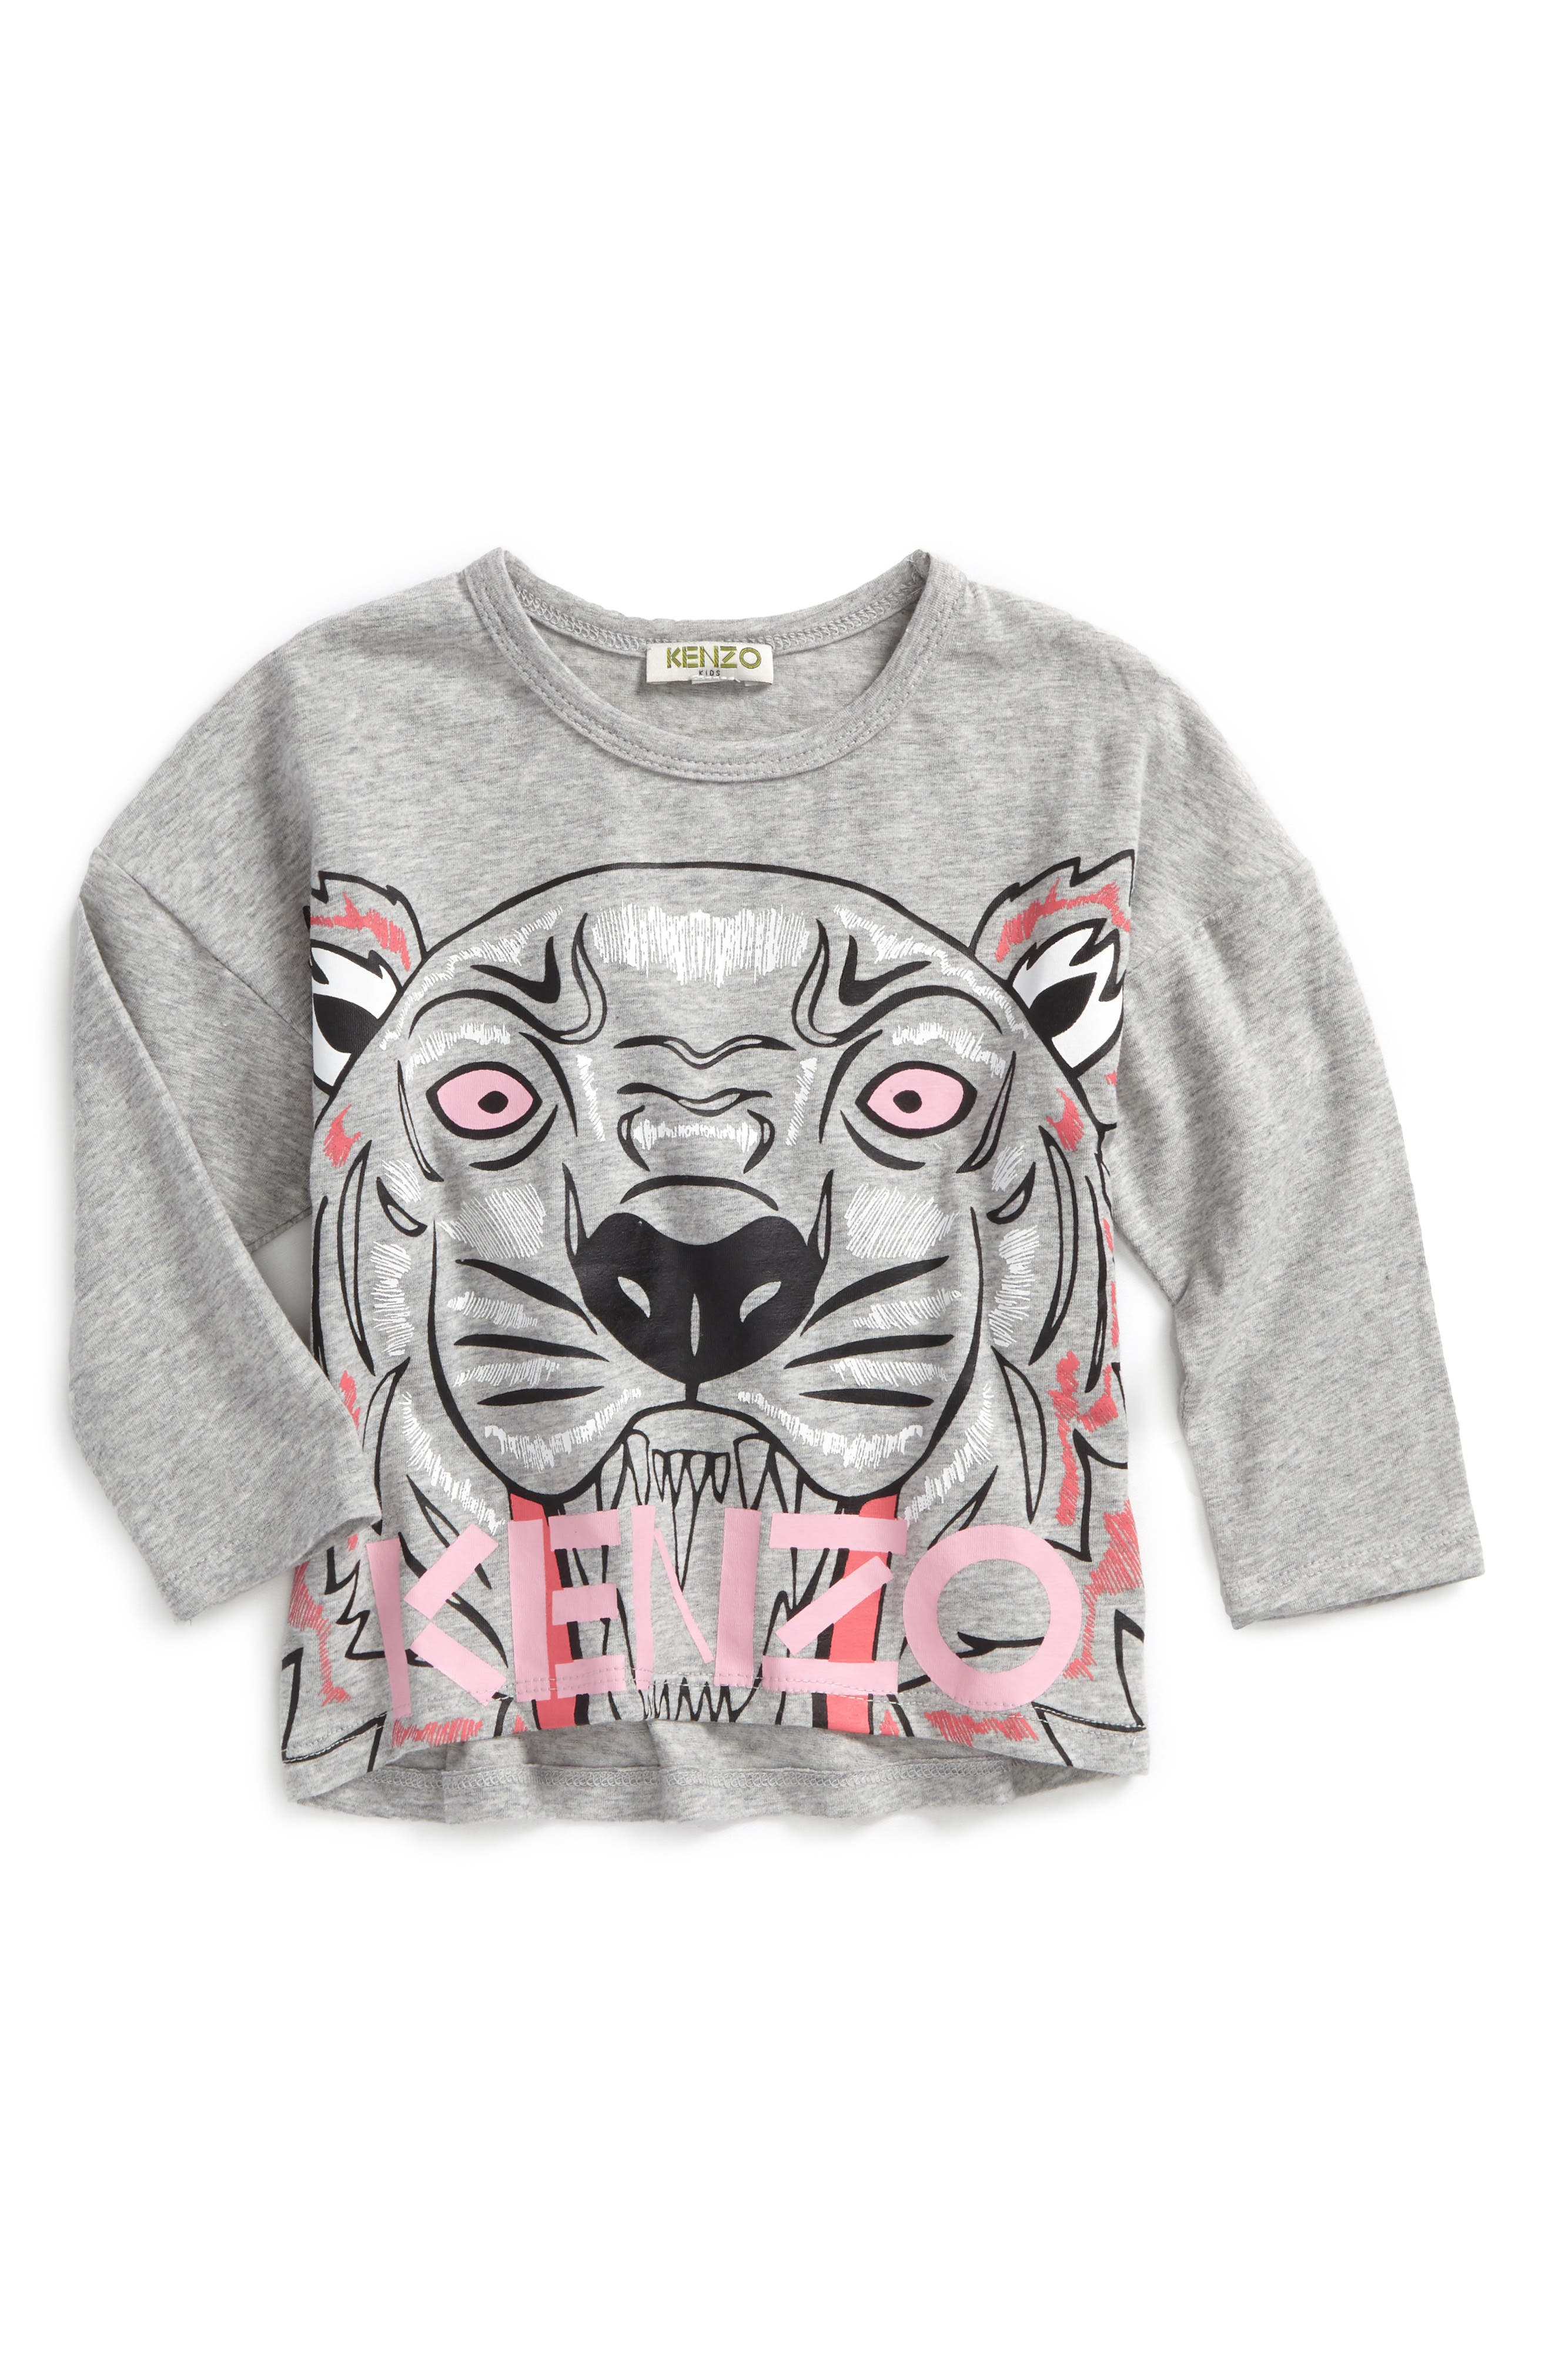 KENZO Logo Graphic Tee (Toddler Girls, Little Girls & Big Girls)